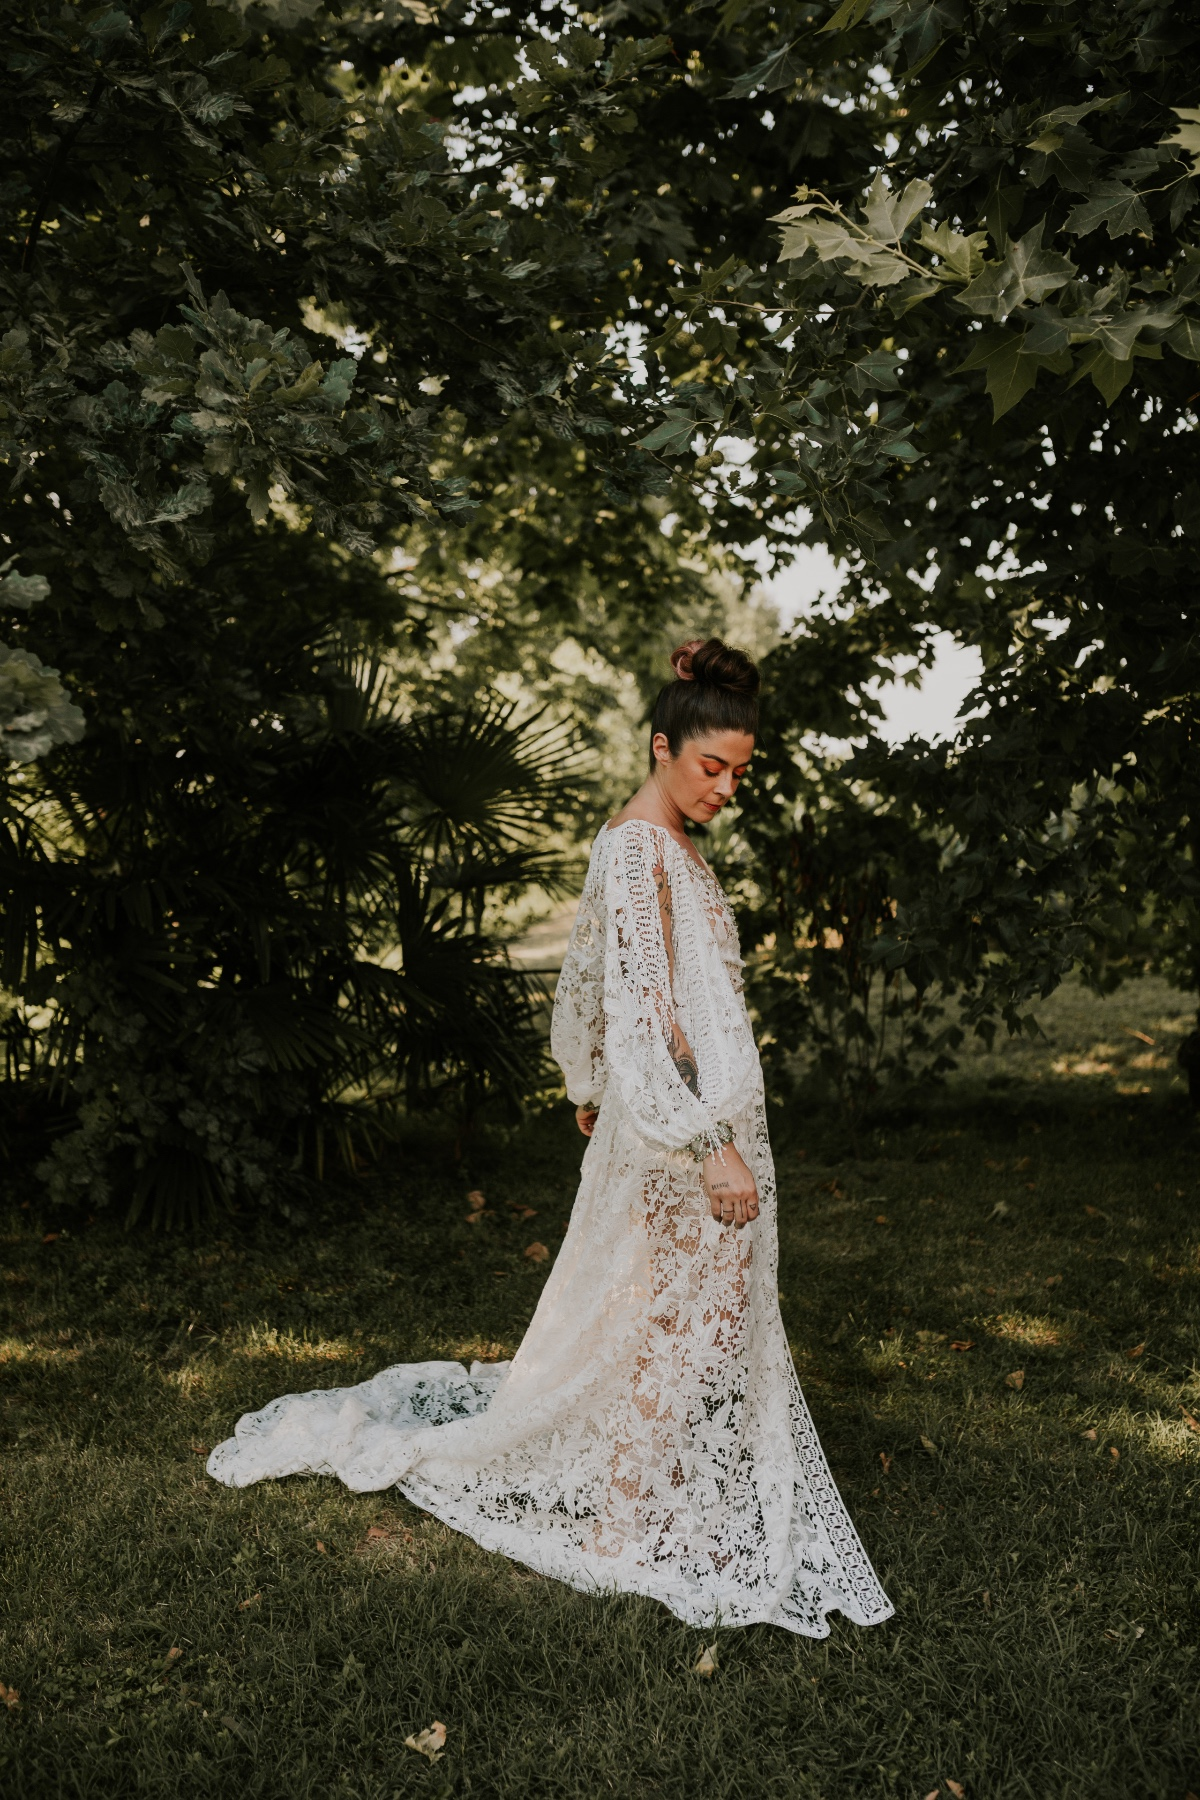 boho chic wedding dress by Yoliah Spose